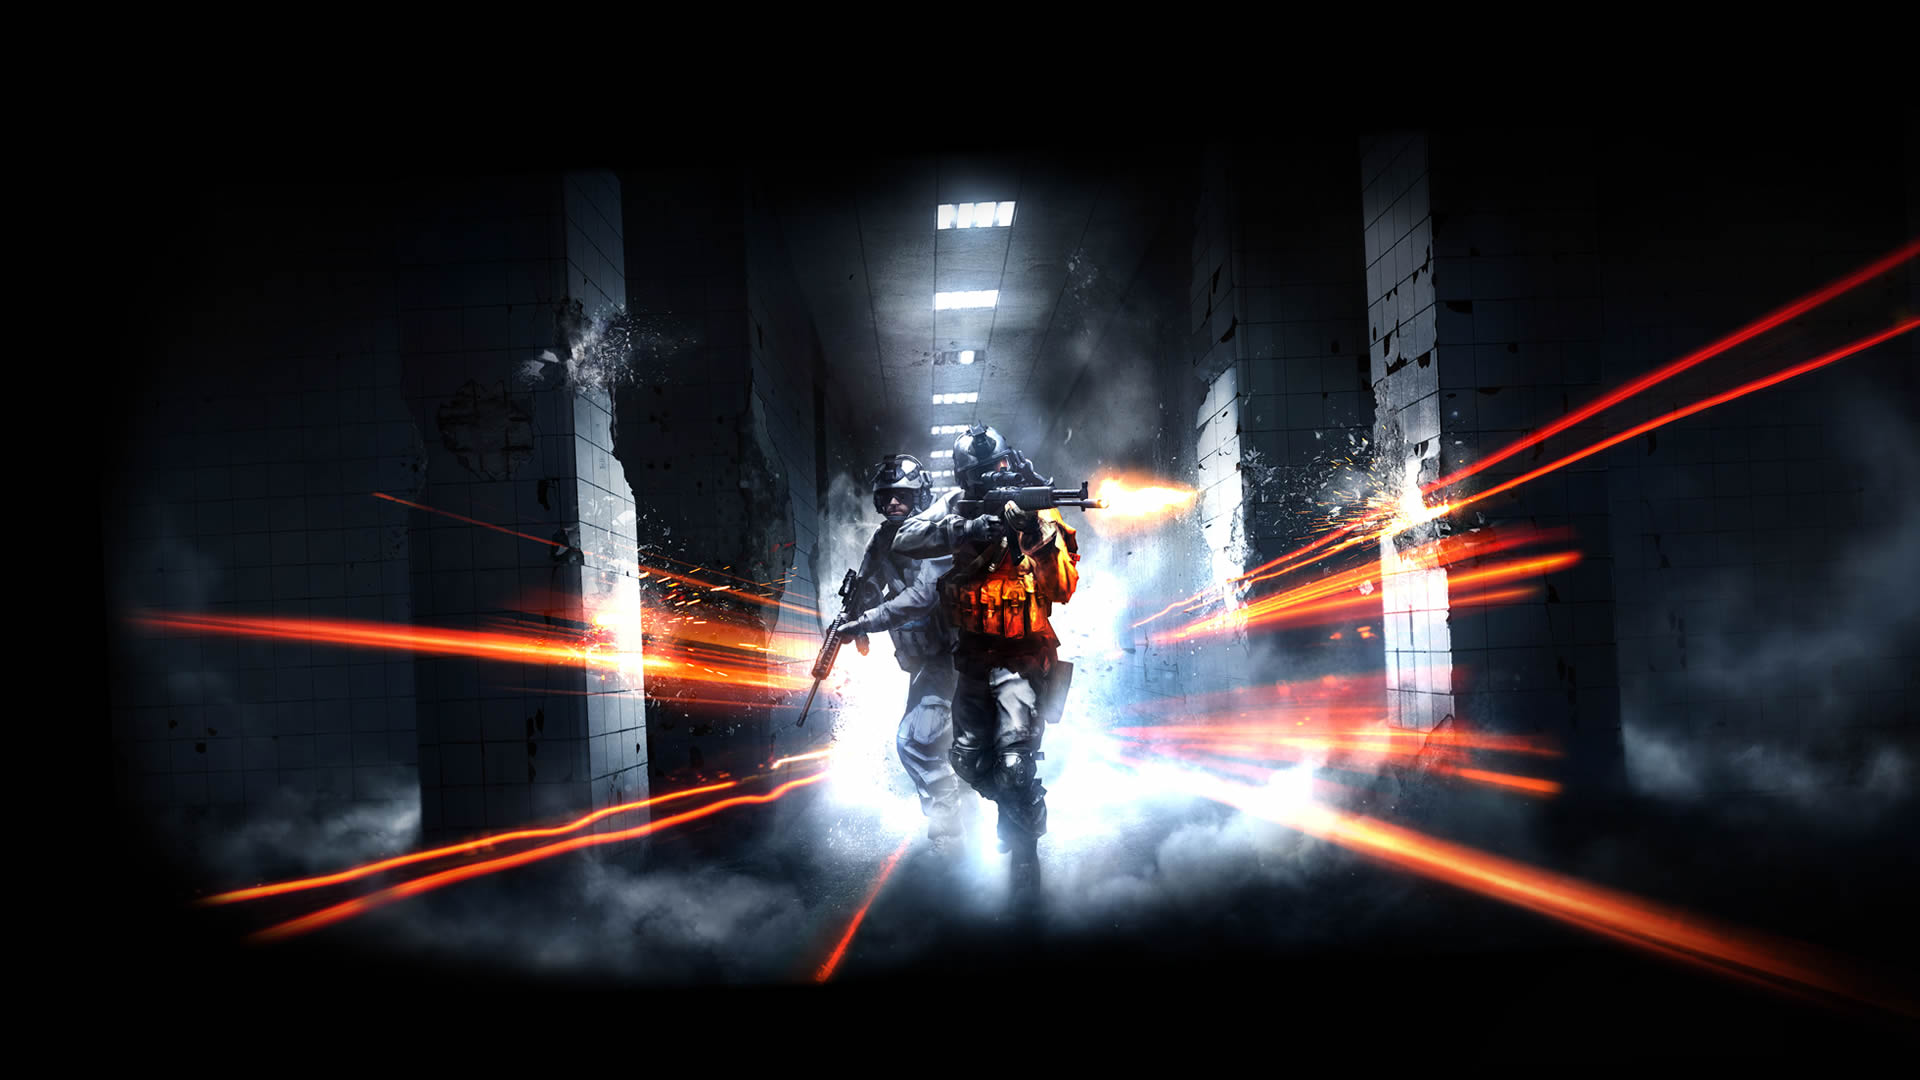 Battlefield 4 Get Target Shooting - 2560 X 1440 Fps , HD Wallpaper & Backgrounds